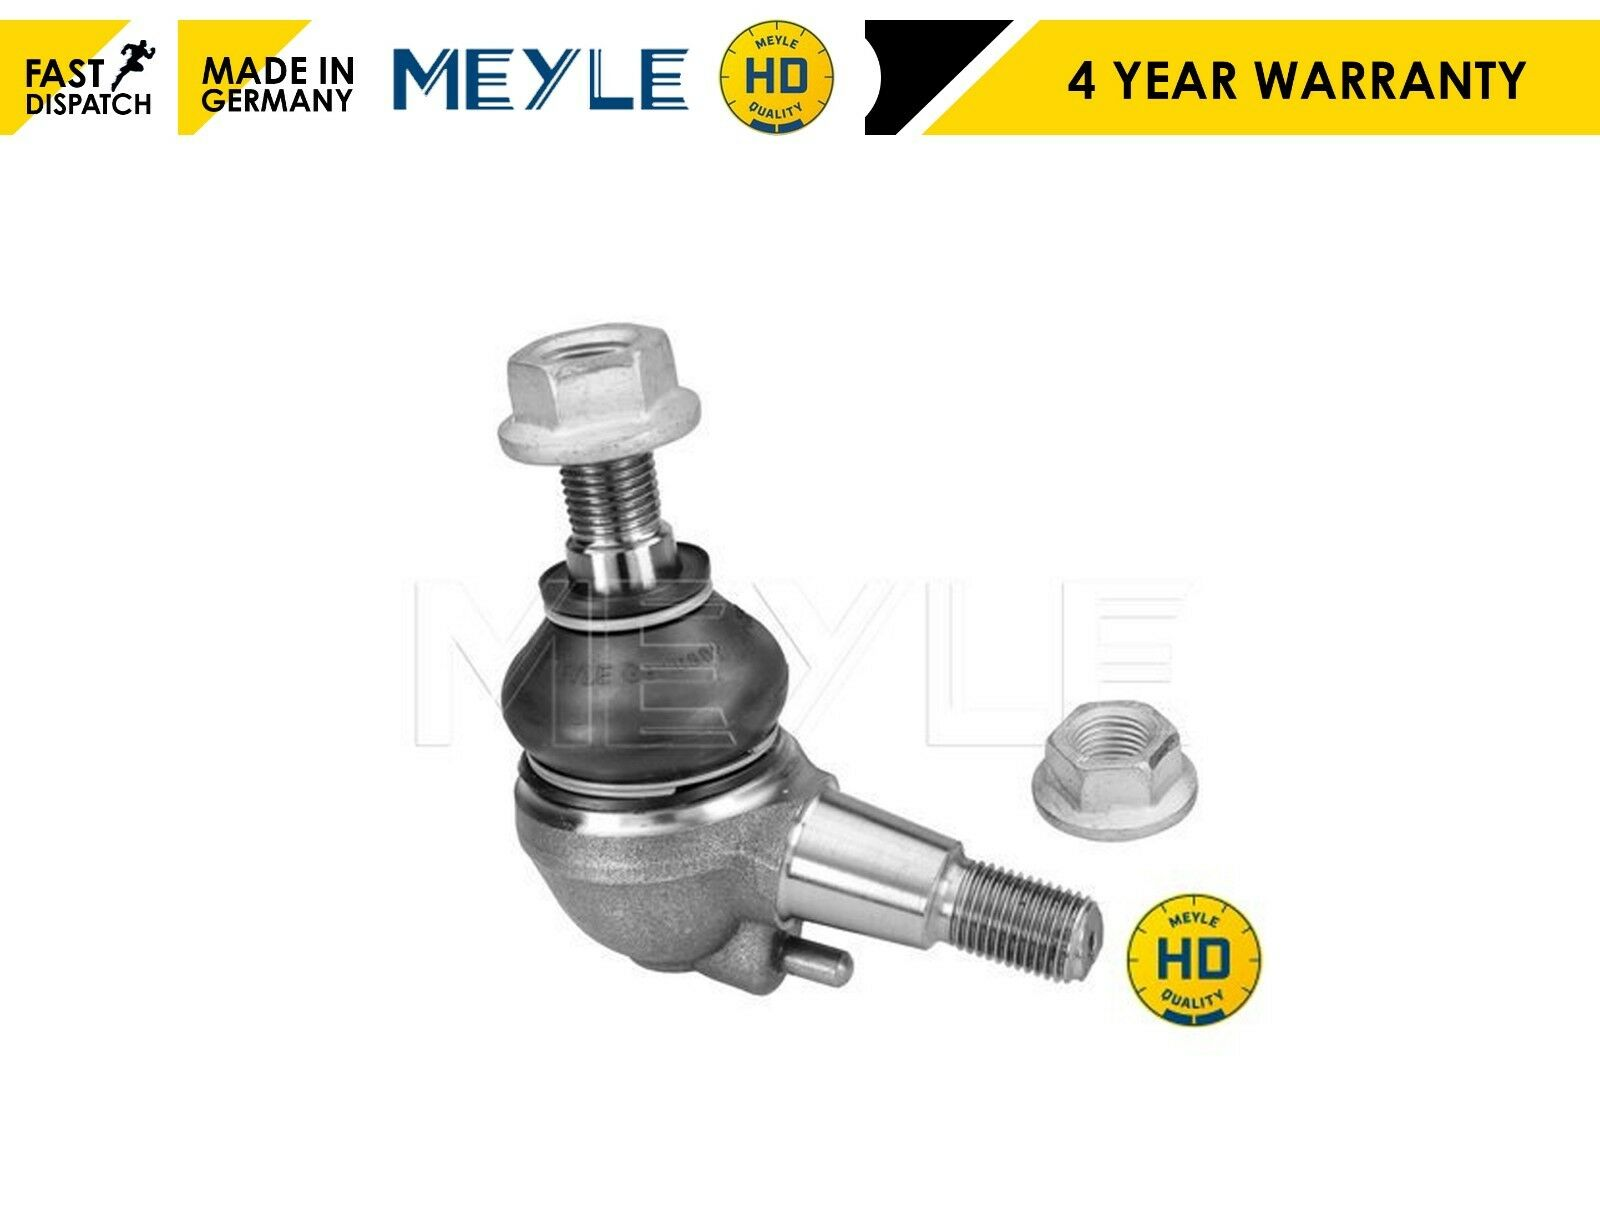 FOR MERCEDES C E S CLASS CLK SLK 93-04 FRONT LOWER CONTROL ARM BALL JOINT HD